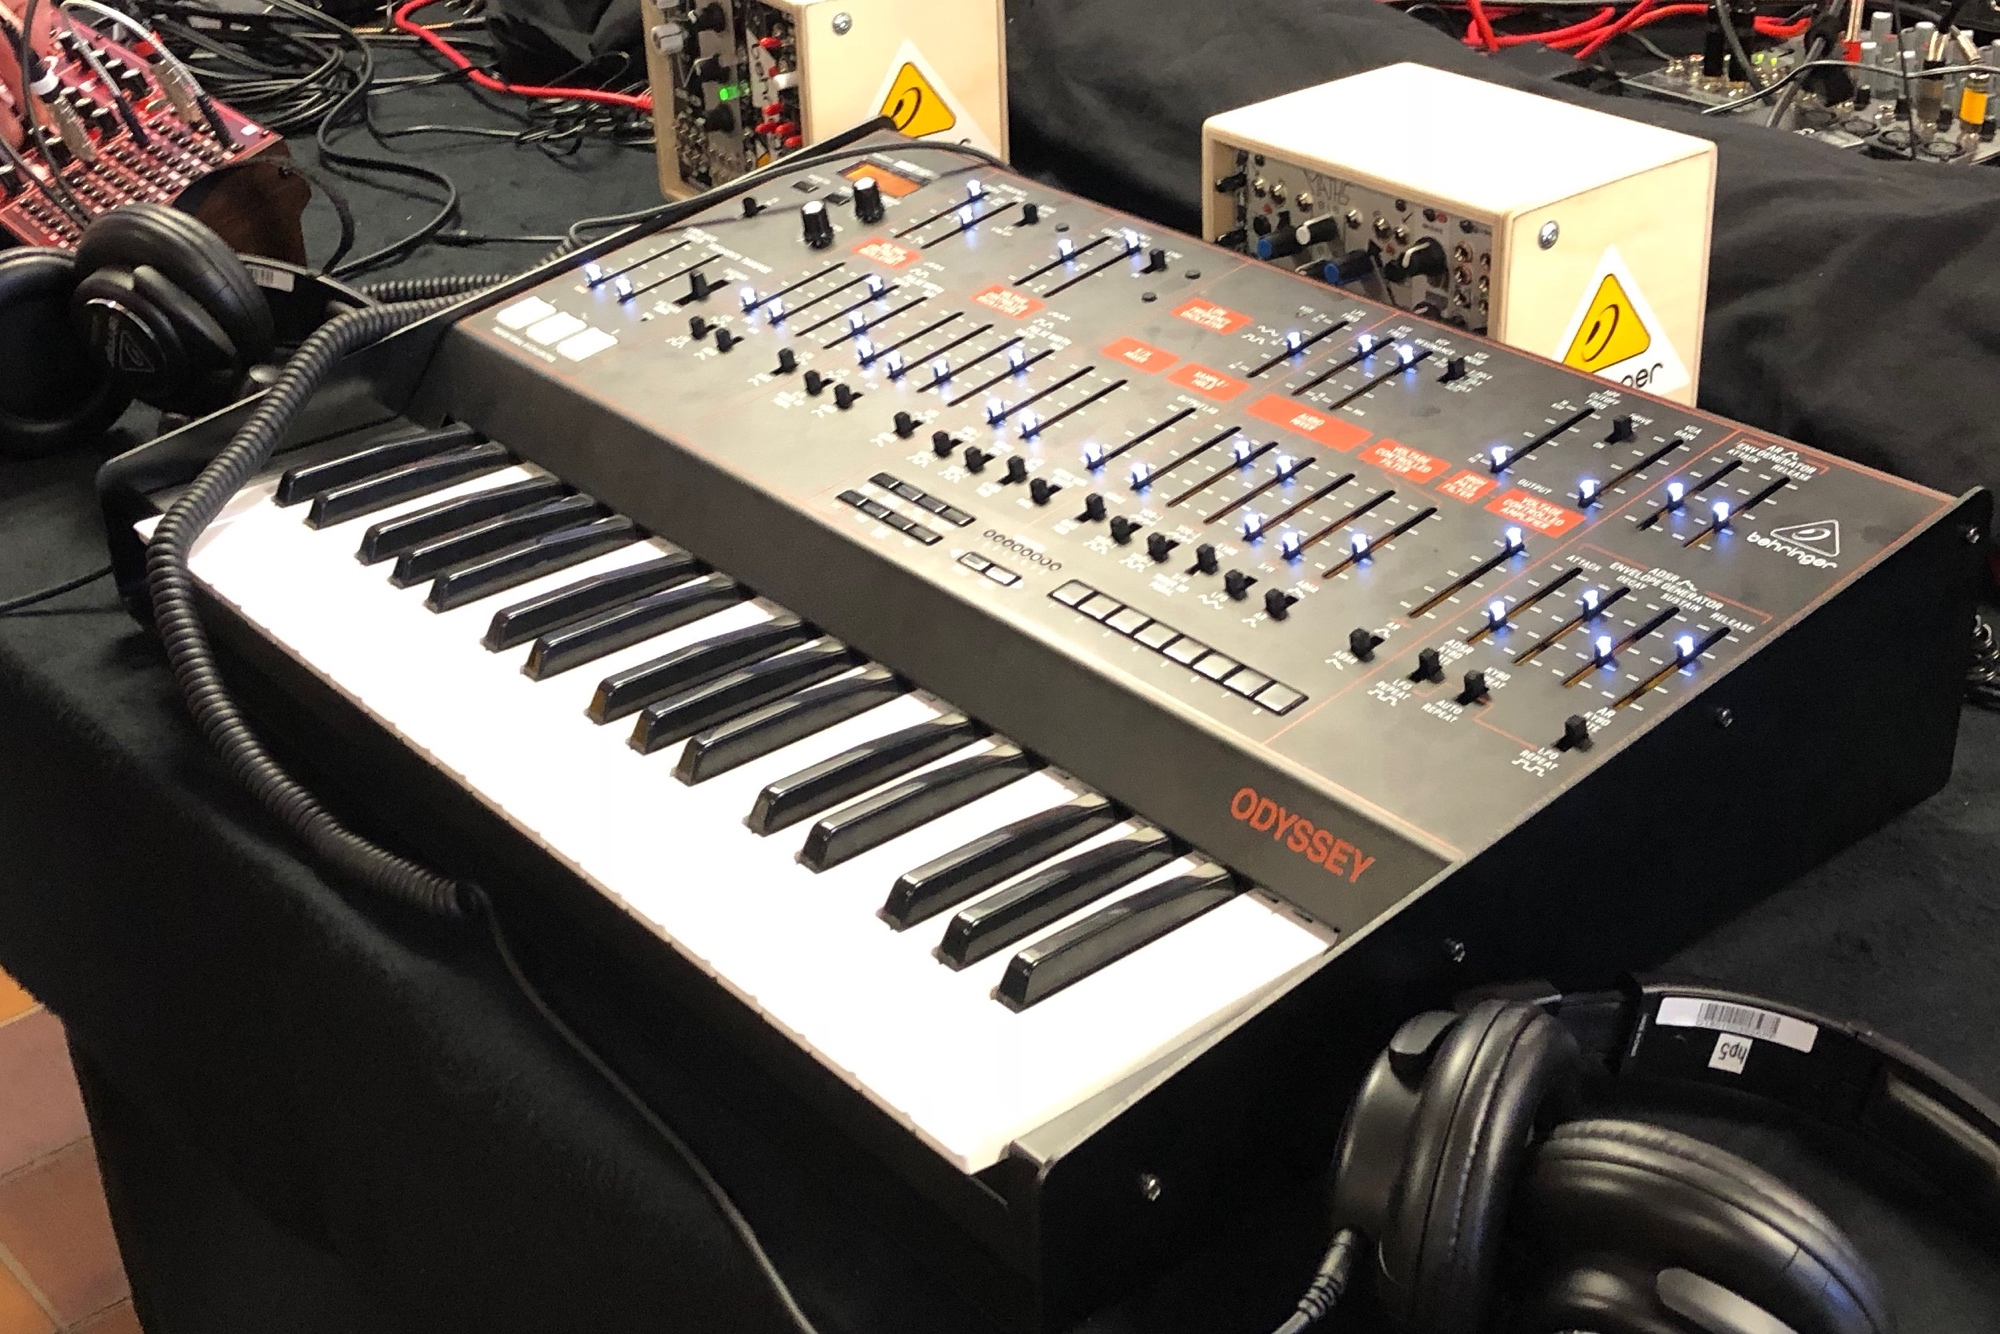 Modules, monosynths and clones: The sights and sounds  Superbooth 2018